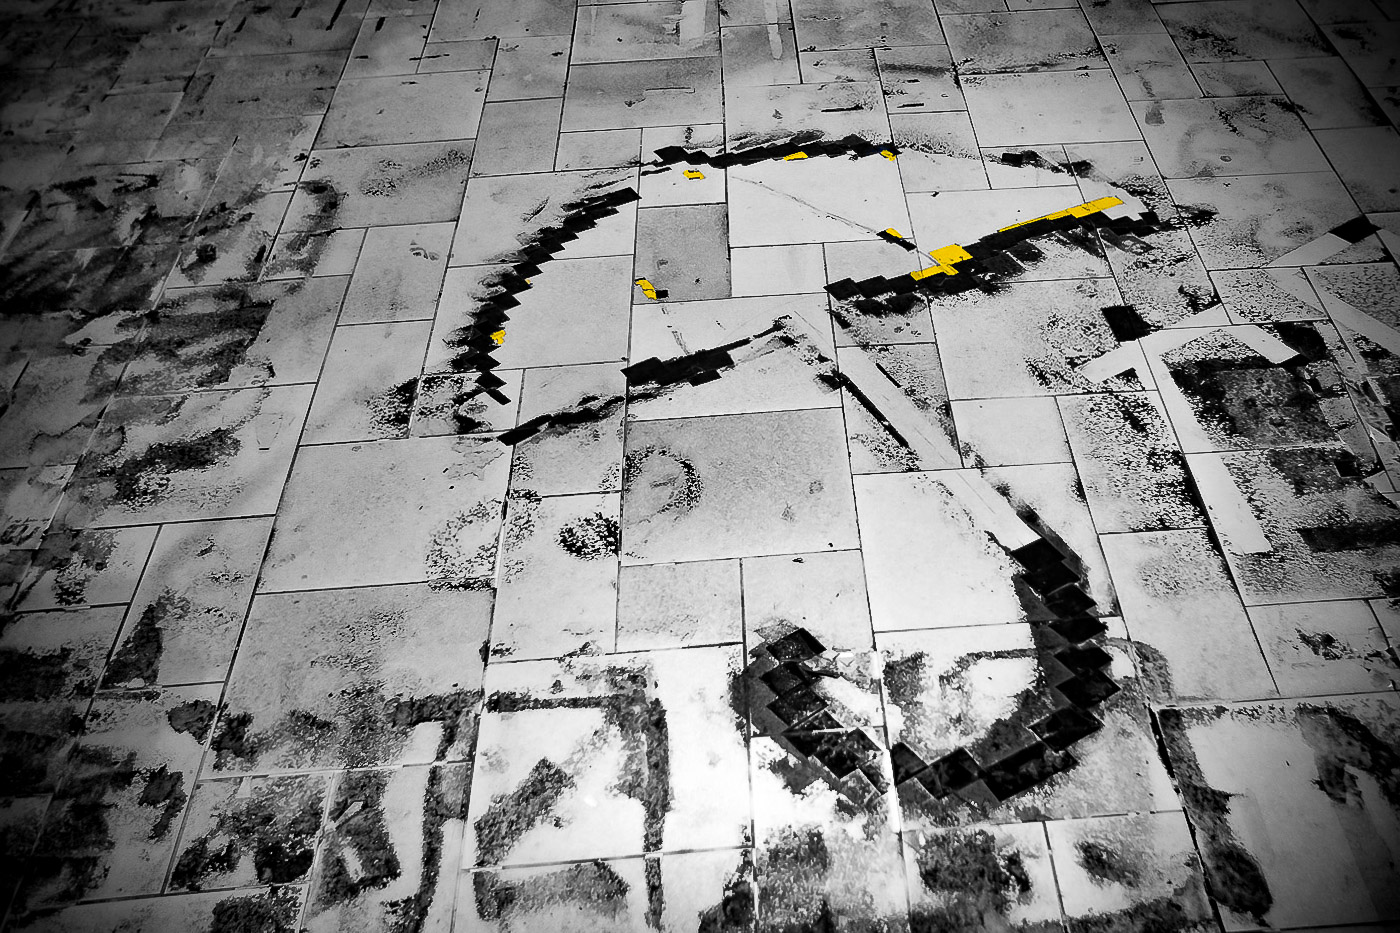 Glue and pieces of tape outline the spot on the floor where a large umbrella image had once been glued to the floor.